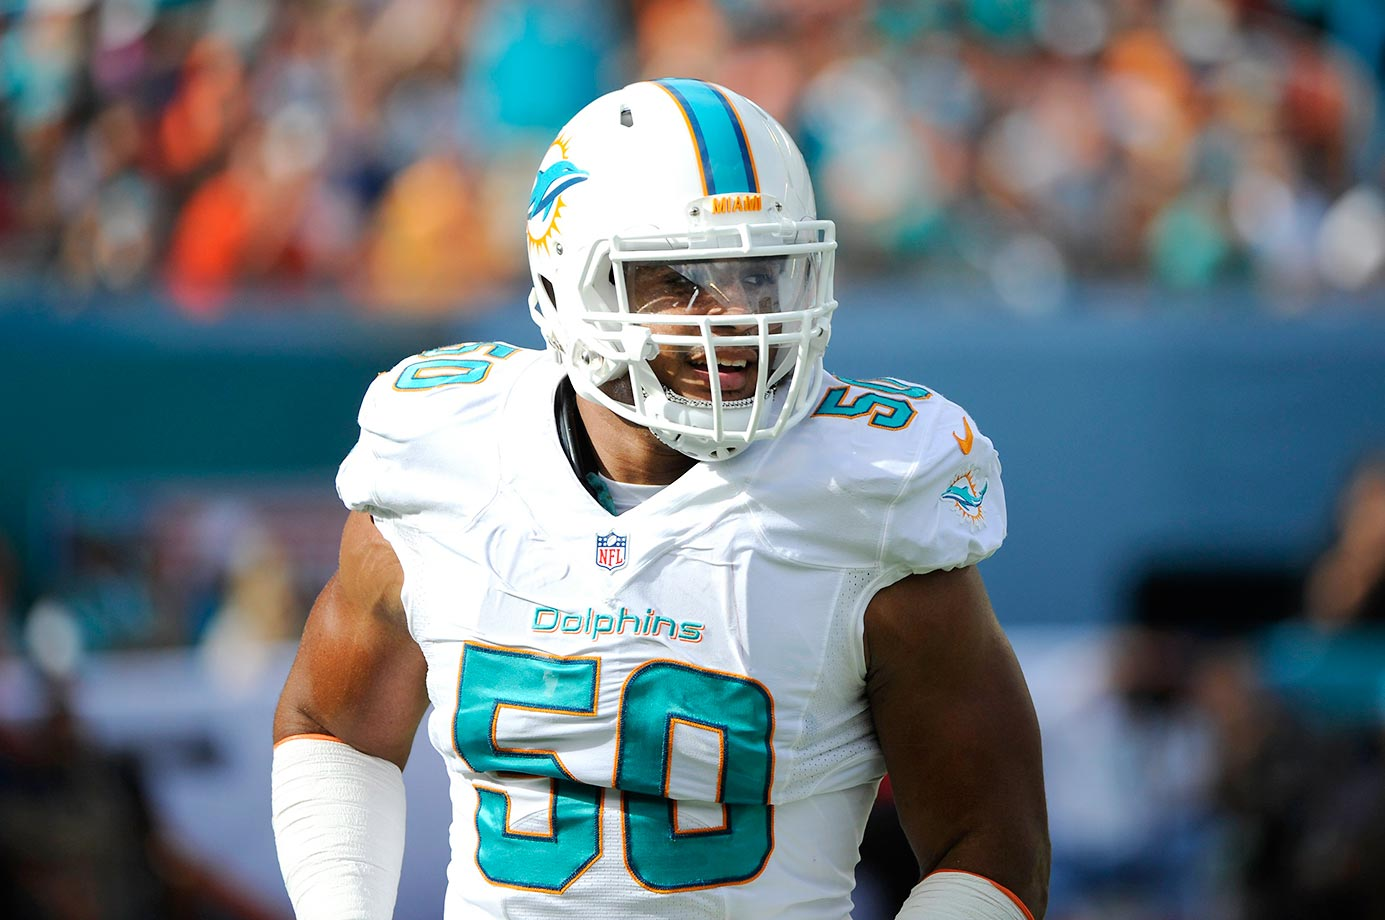 With Cameron Wake and Ndamukong Suh killing offensive lines on one side of Miami's front four this season, Vernon will get a whole bunch of single-teams in his fourth NFL season, and he has the talent to take advantage. His sack totals dropped from 11.5 in 2013 to 6.5 last year, but he had 48 total pressures in 2014.